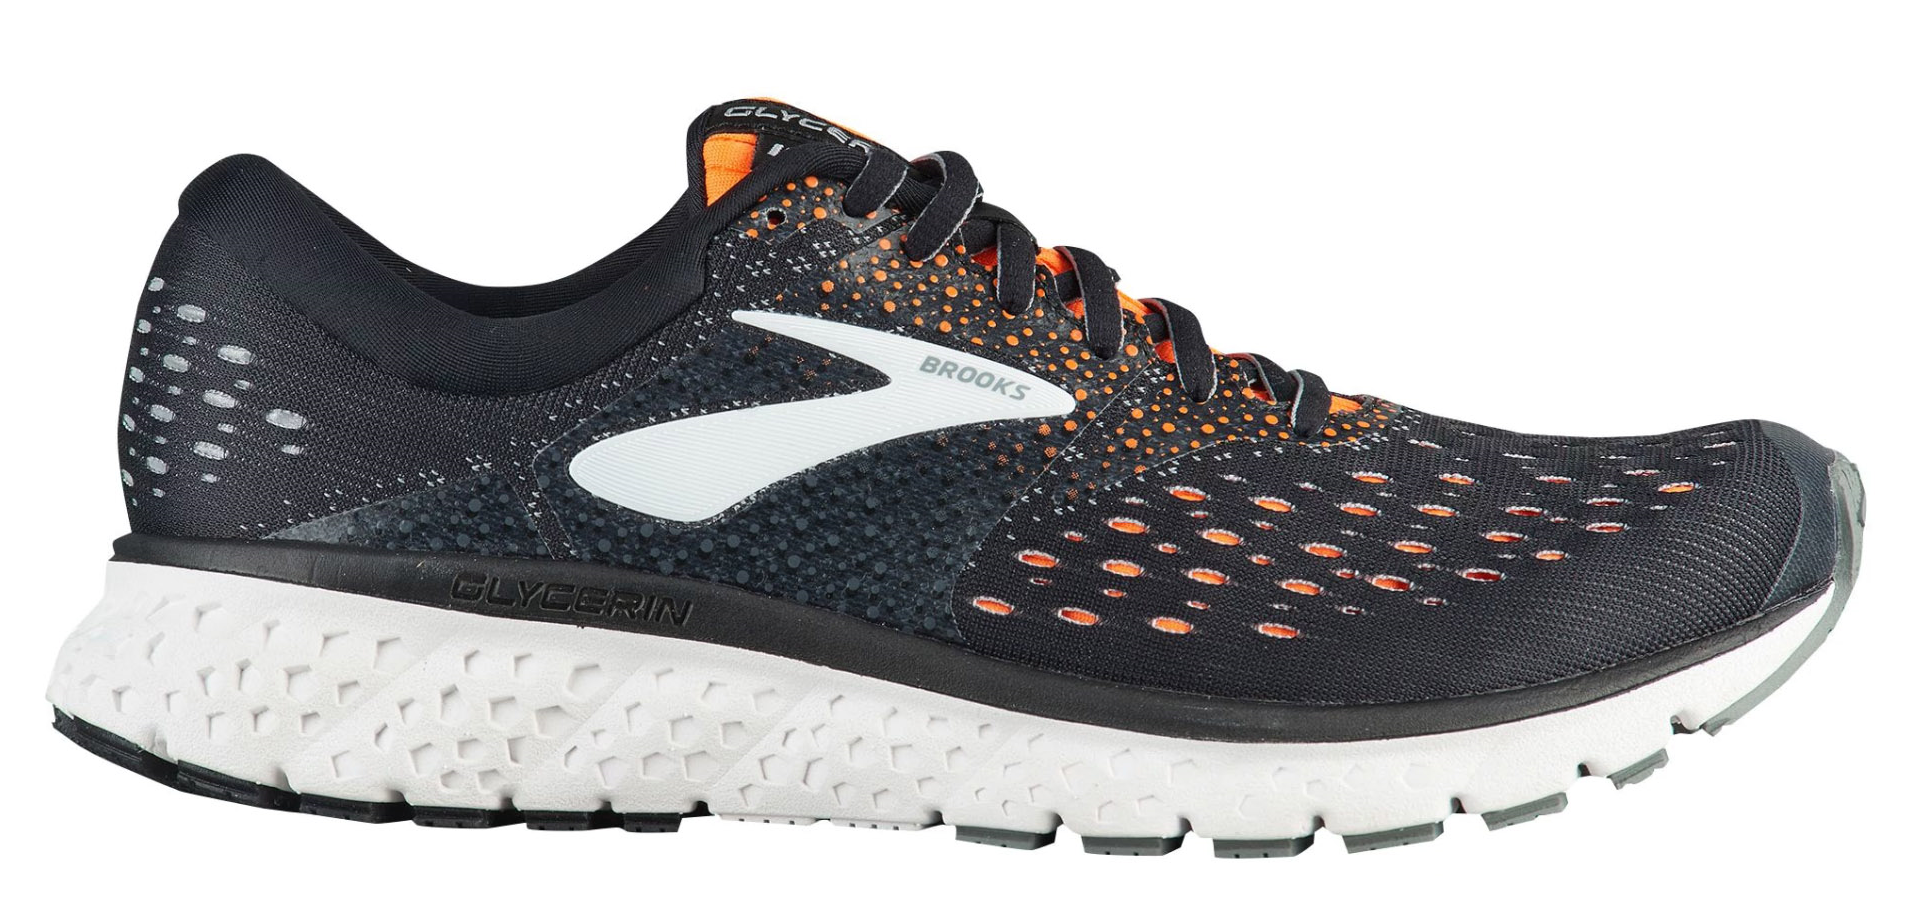 11 Best Men's Running Shoes for Supination